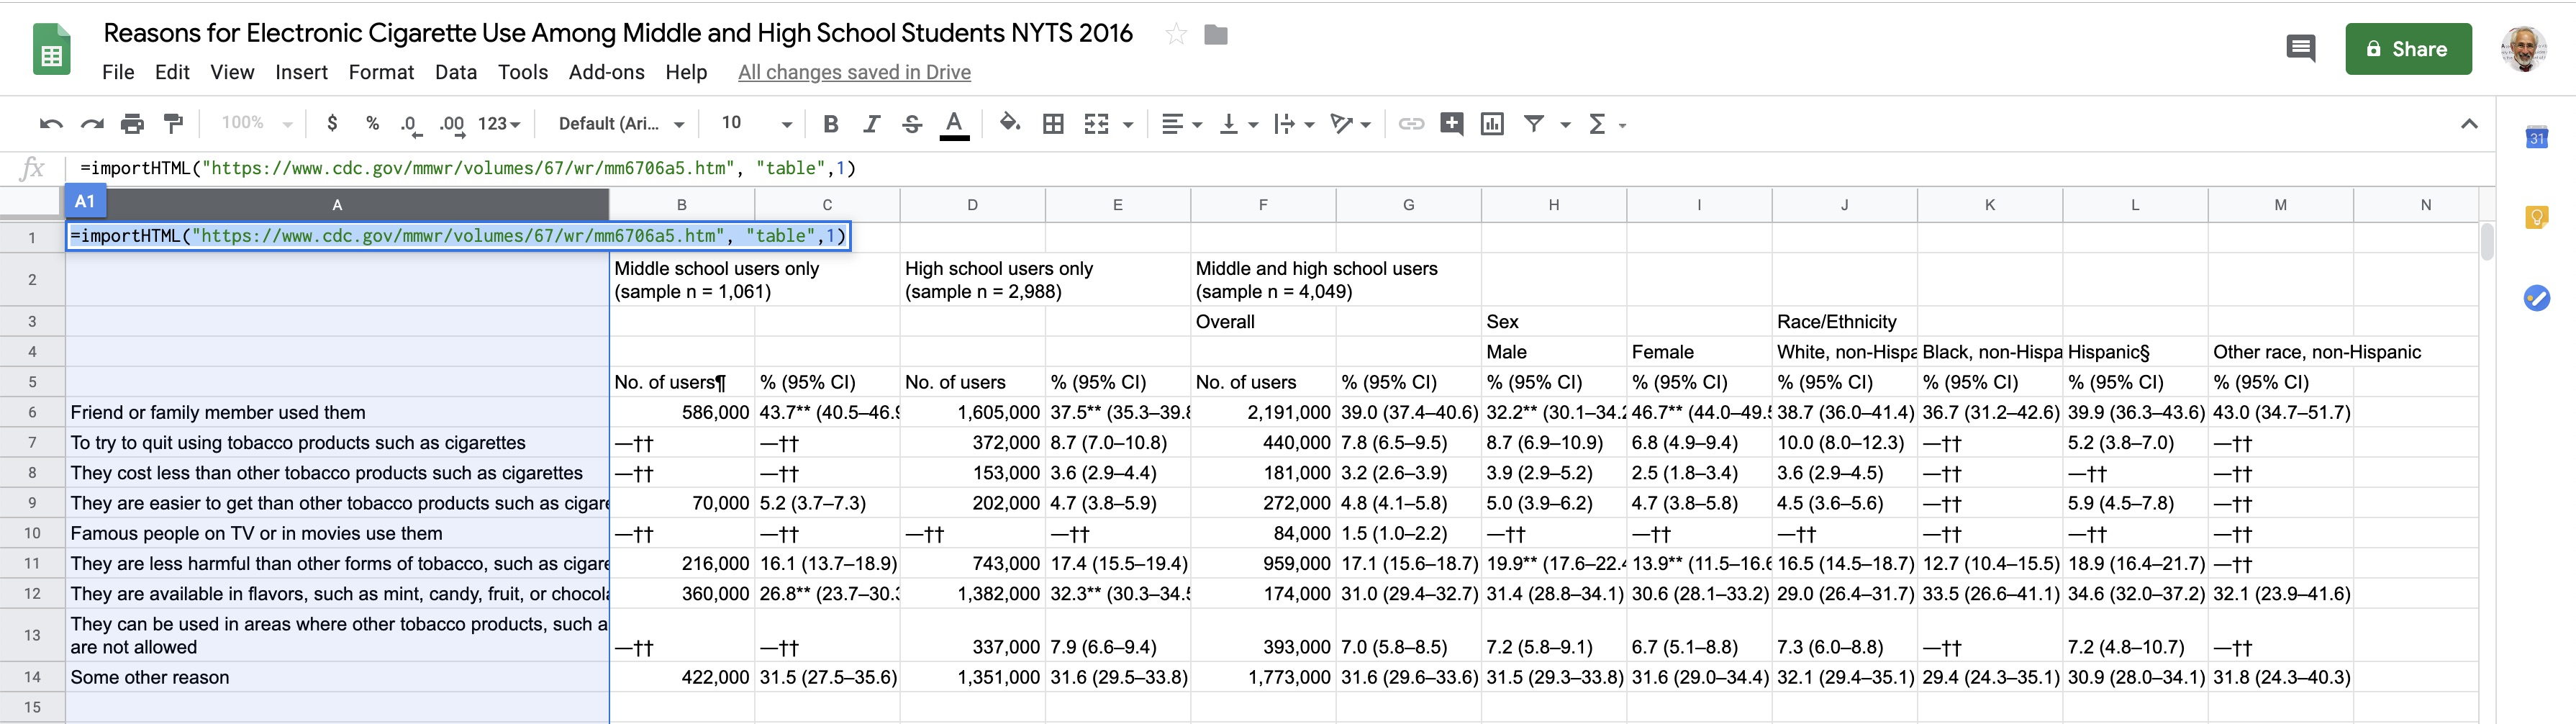 Reasons for electronic cigarette use among middle and high school students NYTS 2016 (Excel table)